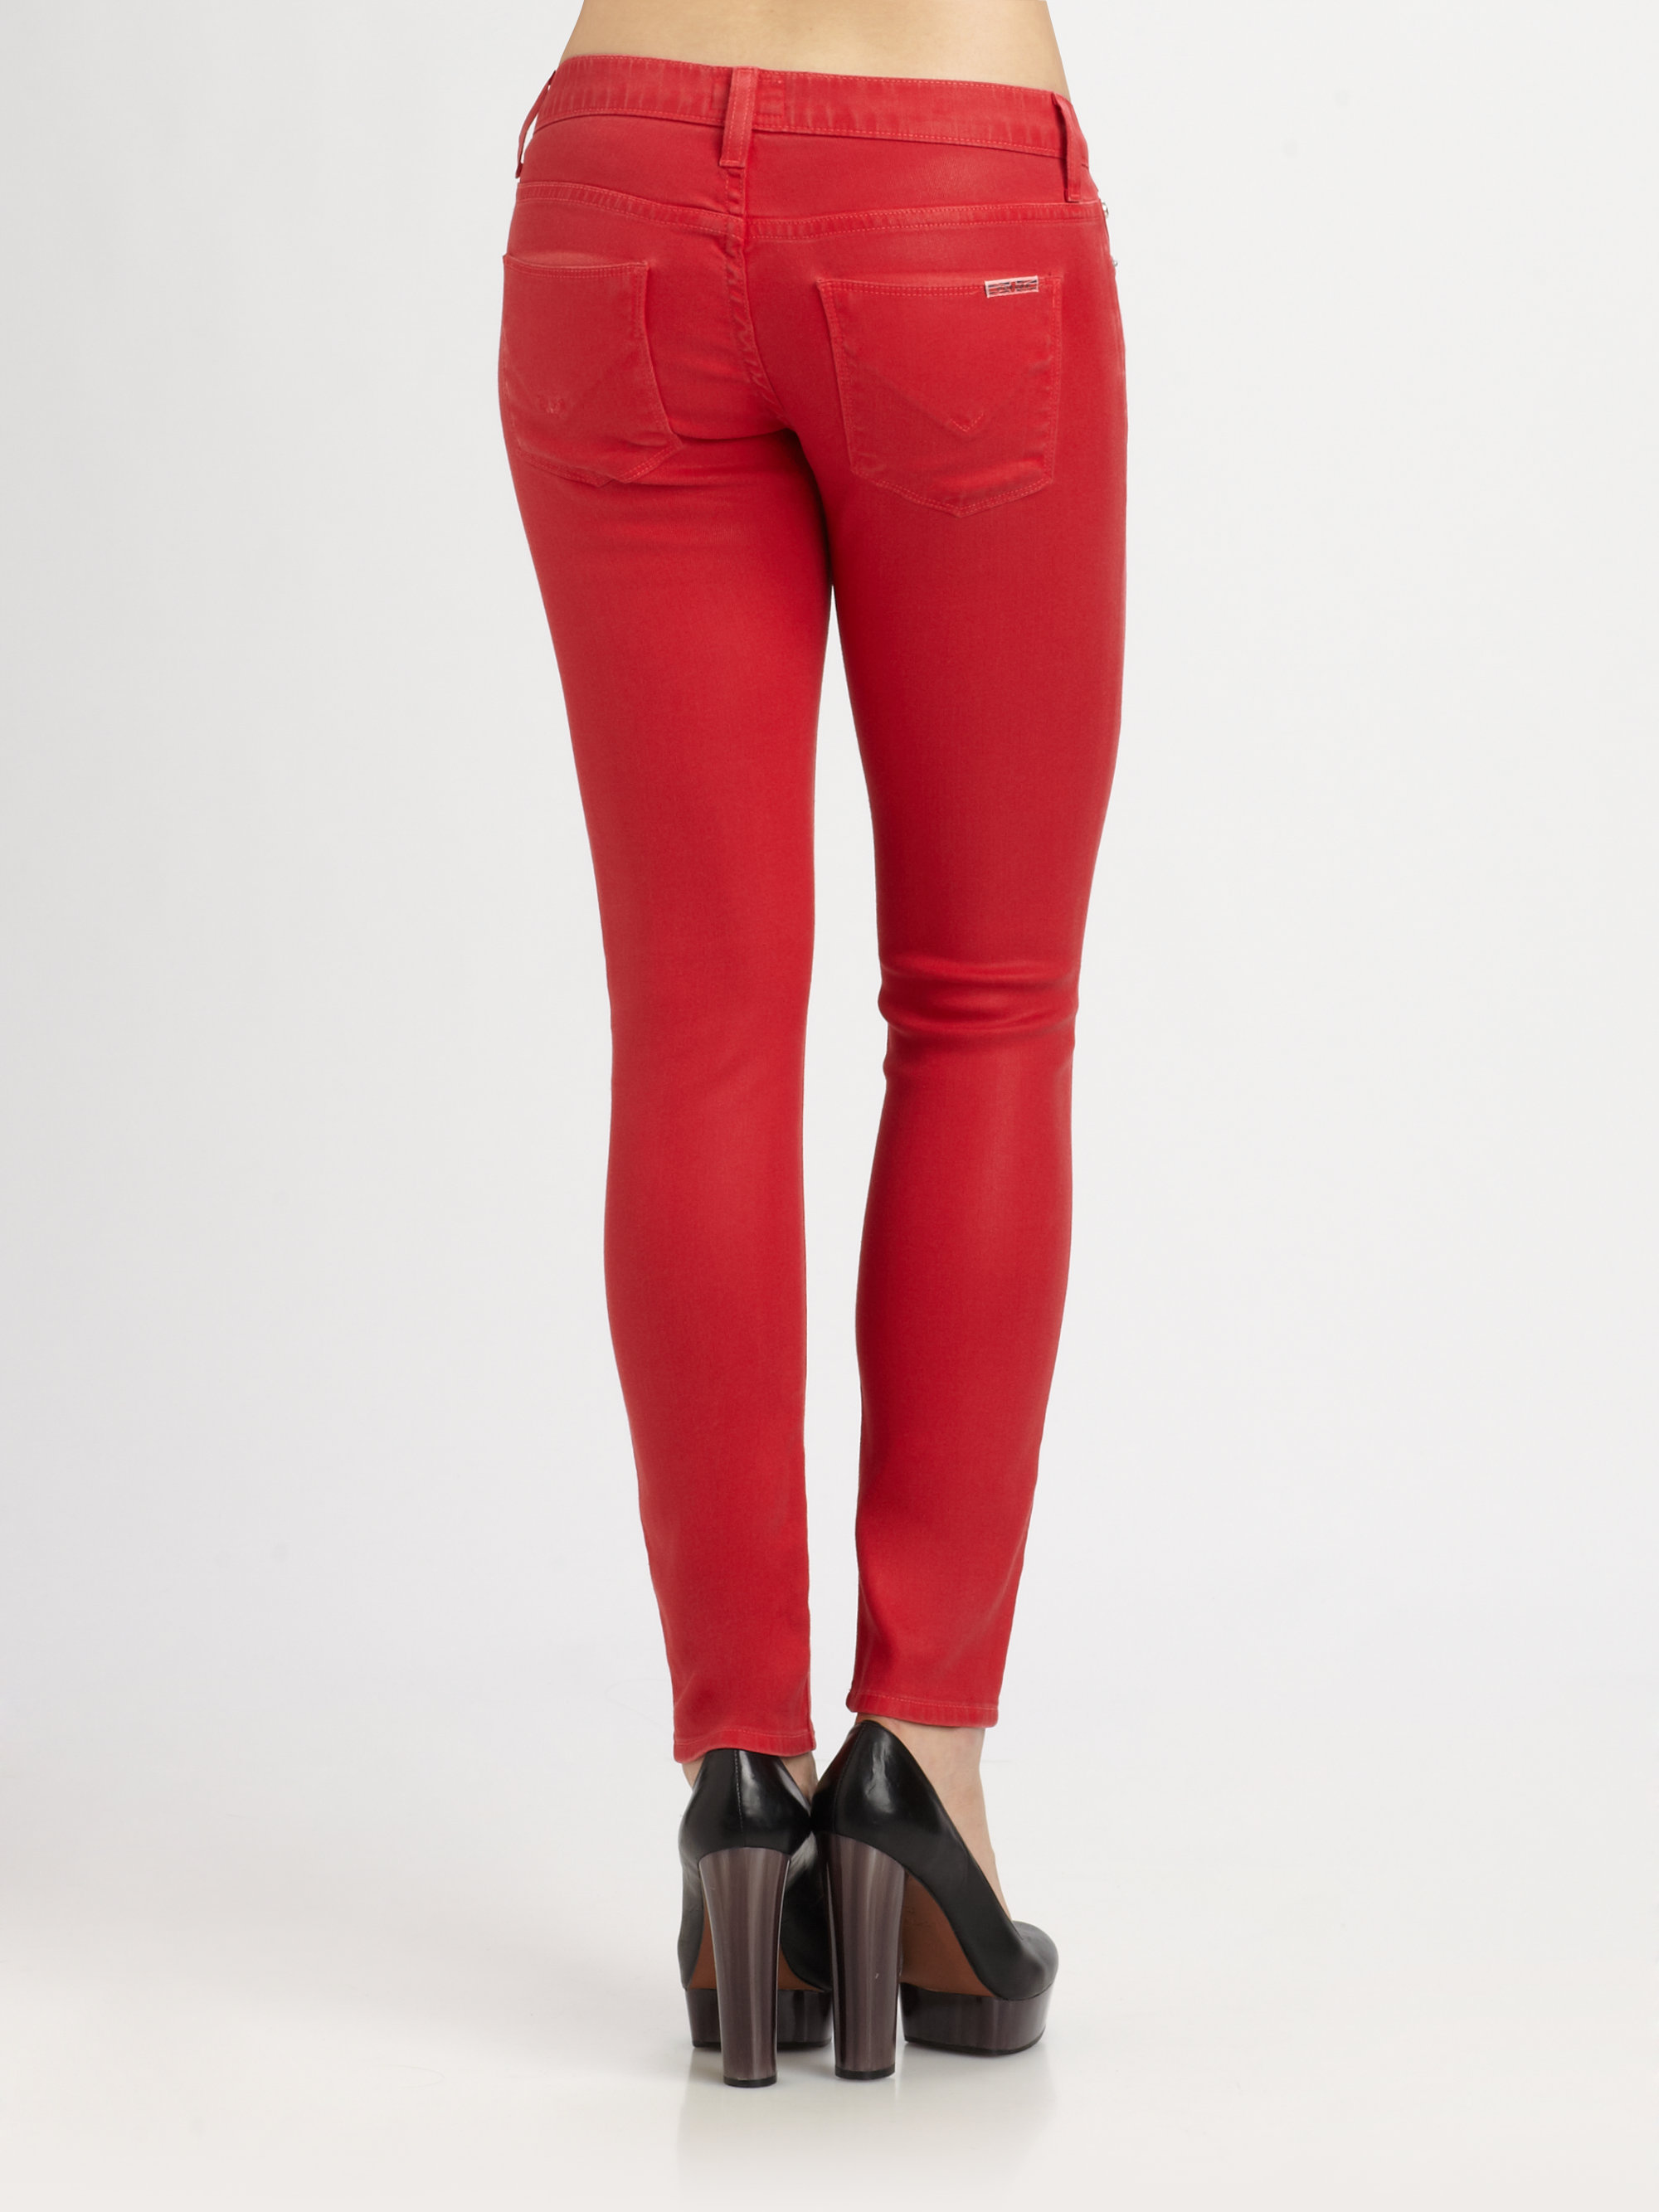 Hudson jeans Krista Super-skinny Jeans in Red | Lyst